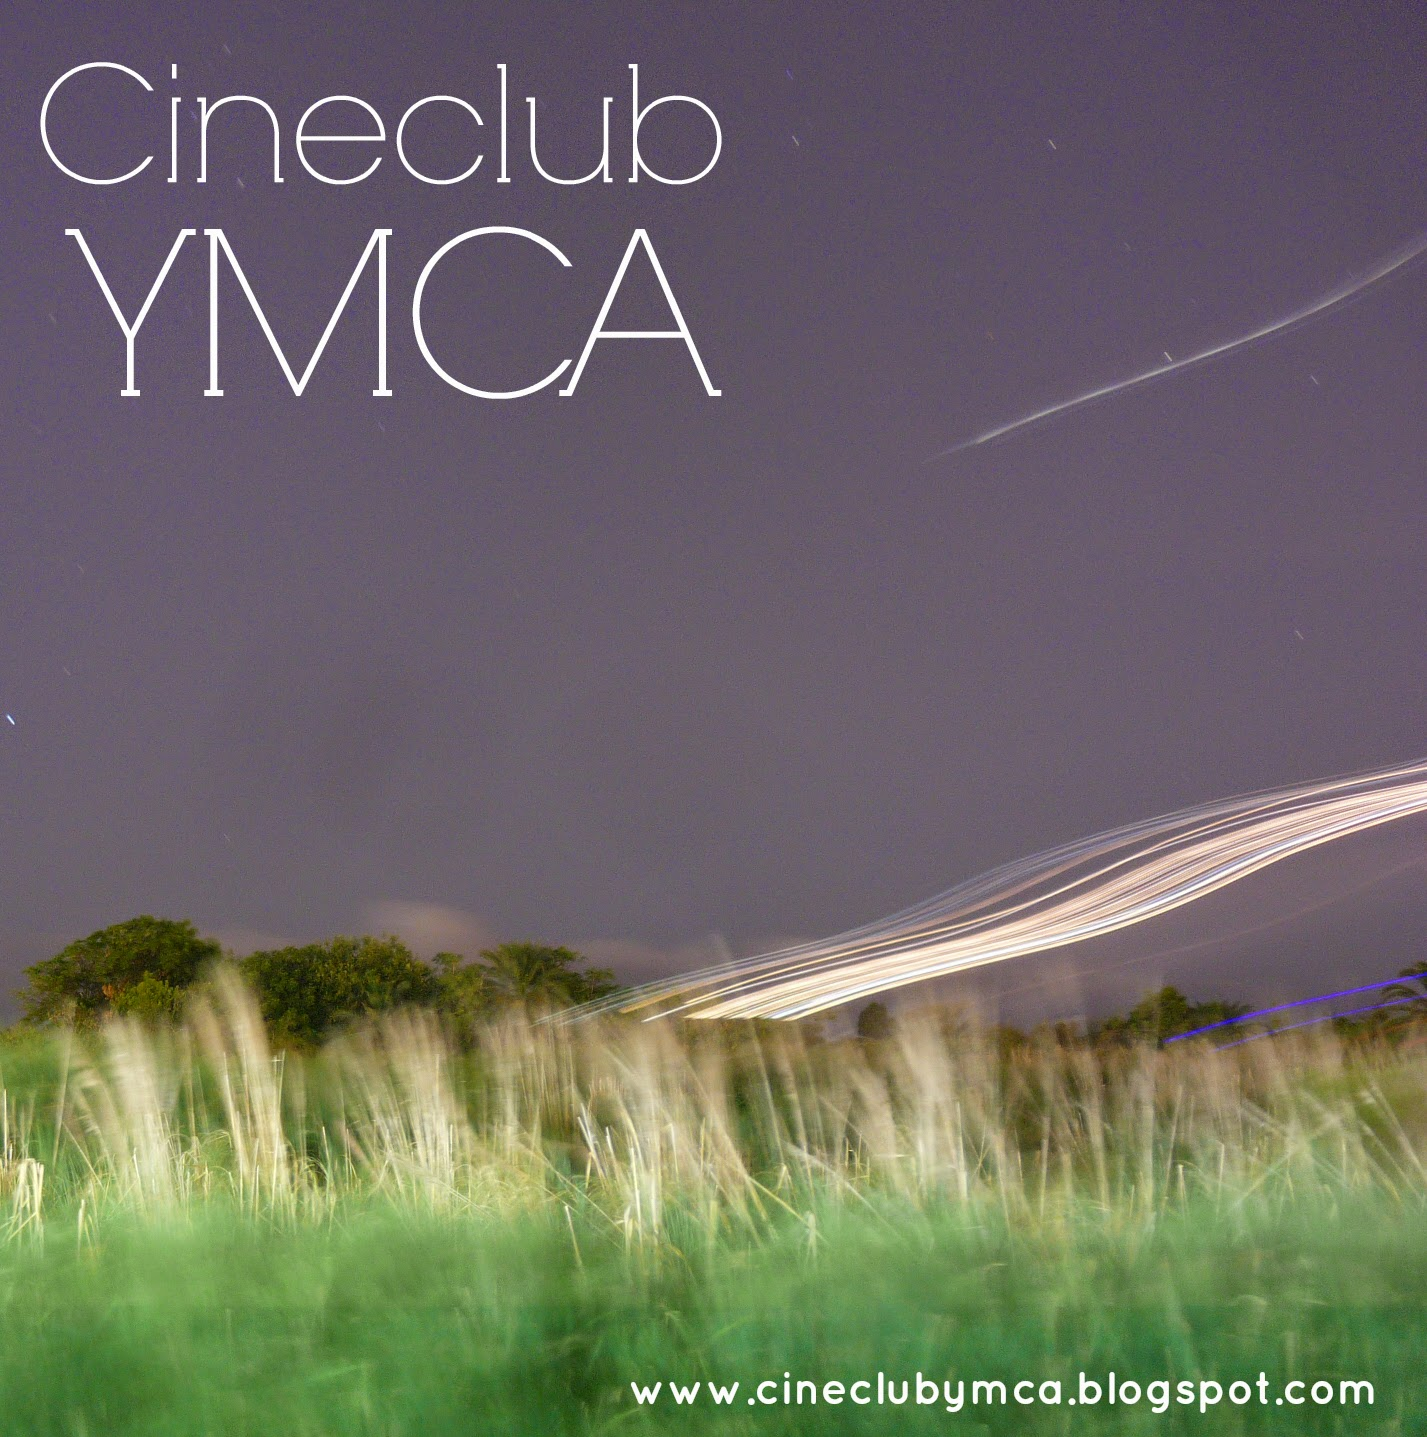 Cineclub YMCA